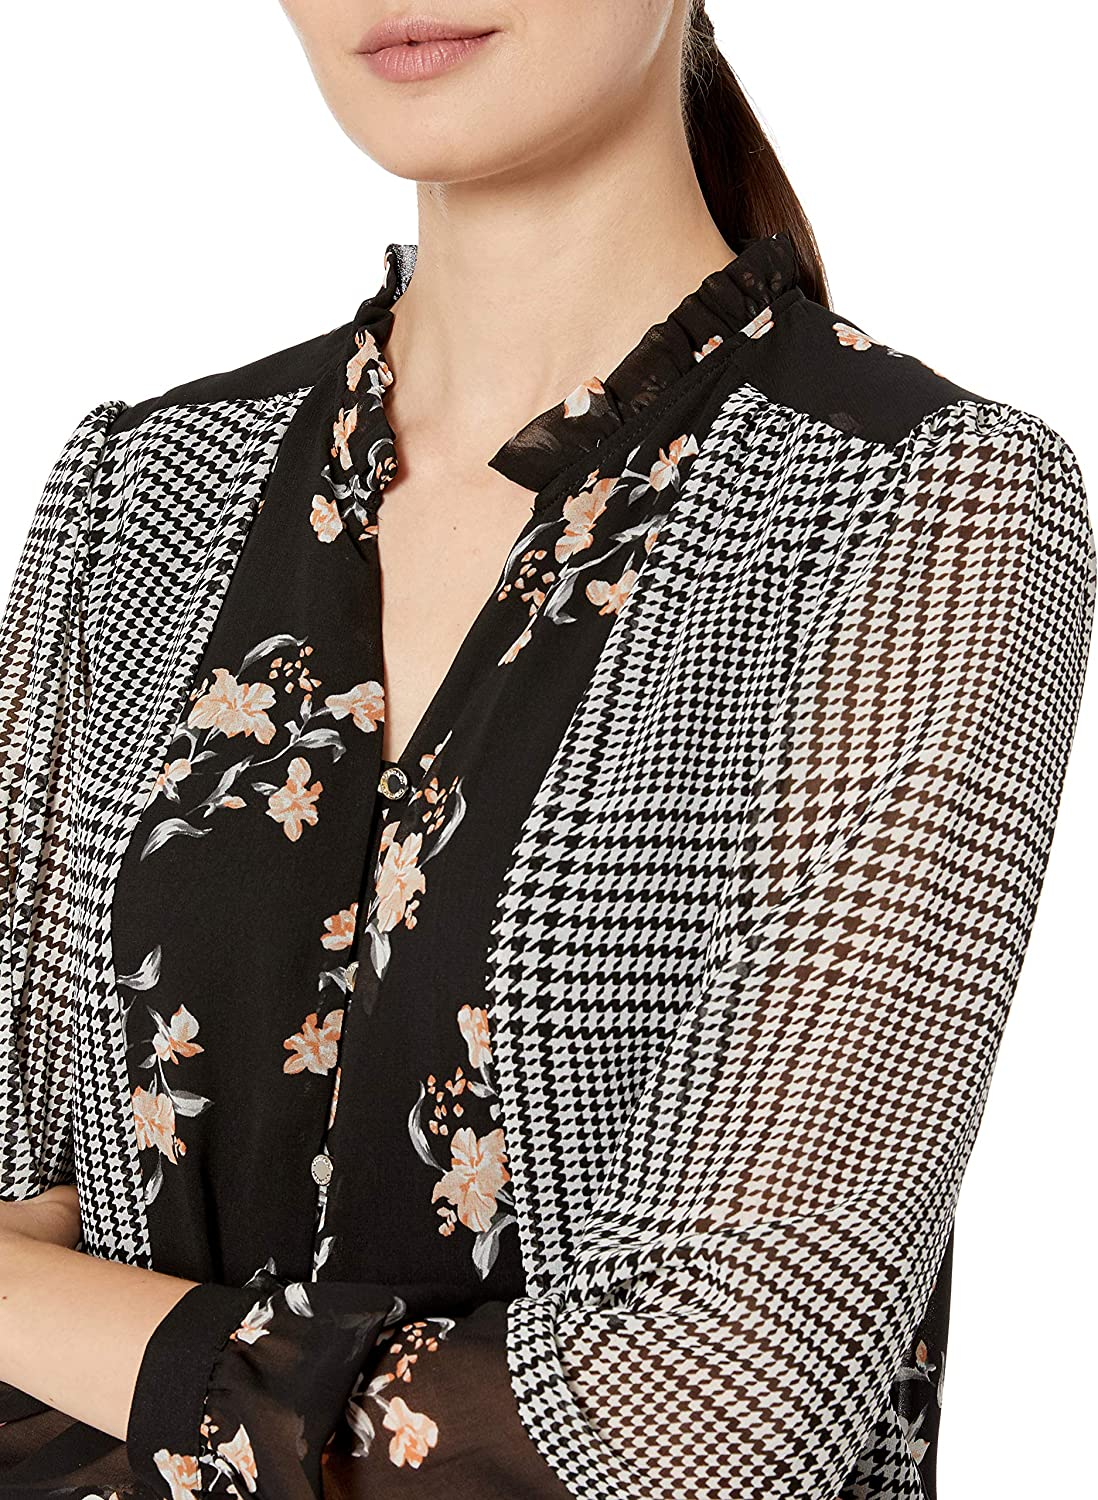 Calvin Klein Womens Button Up Blouse with Ruffle Collar Blouse Plaid Combo